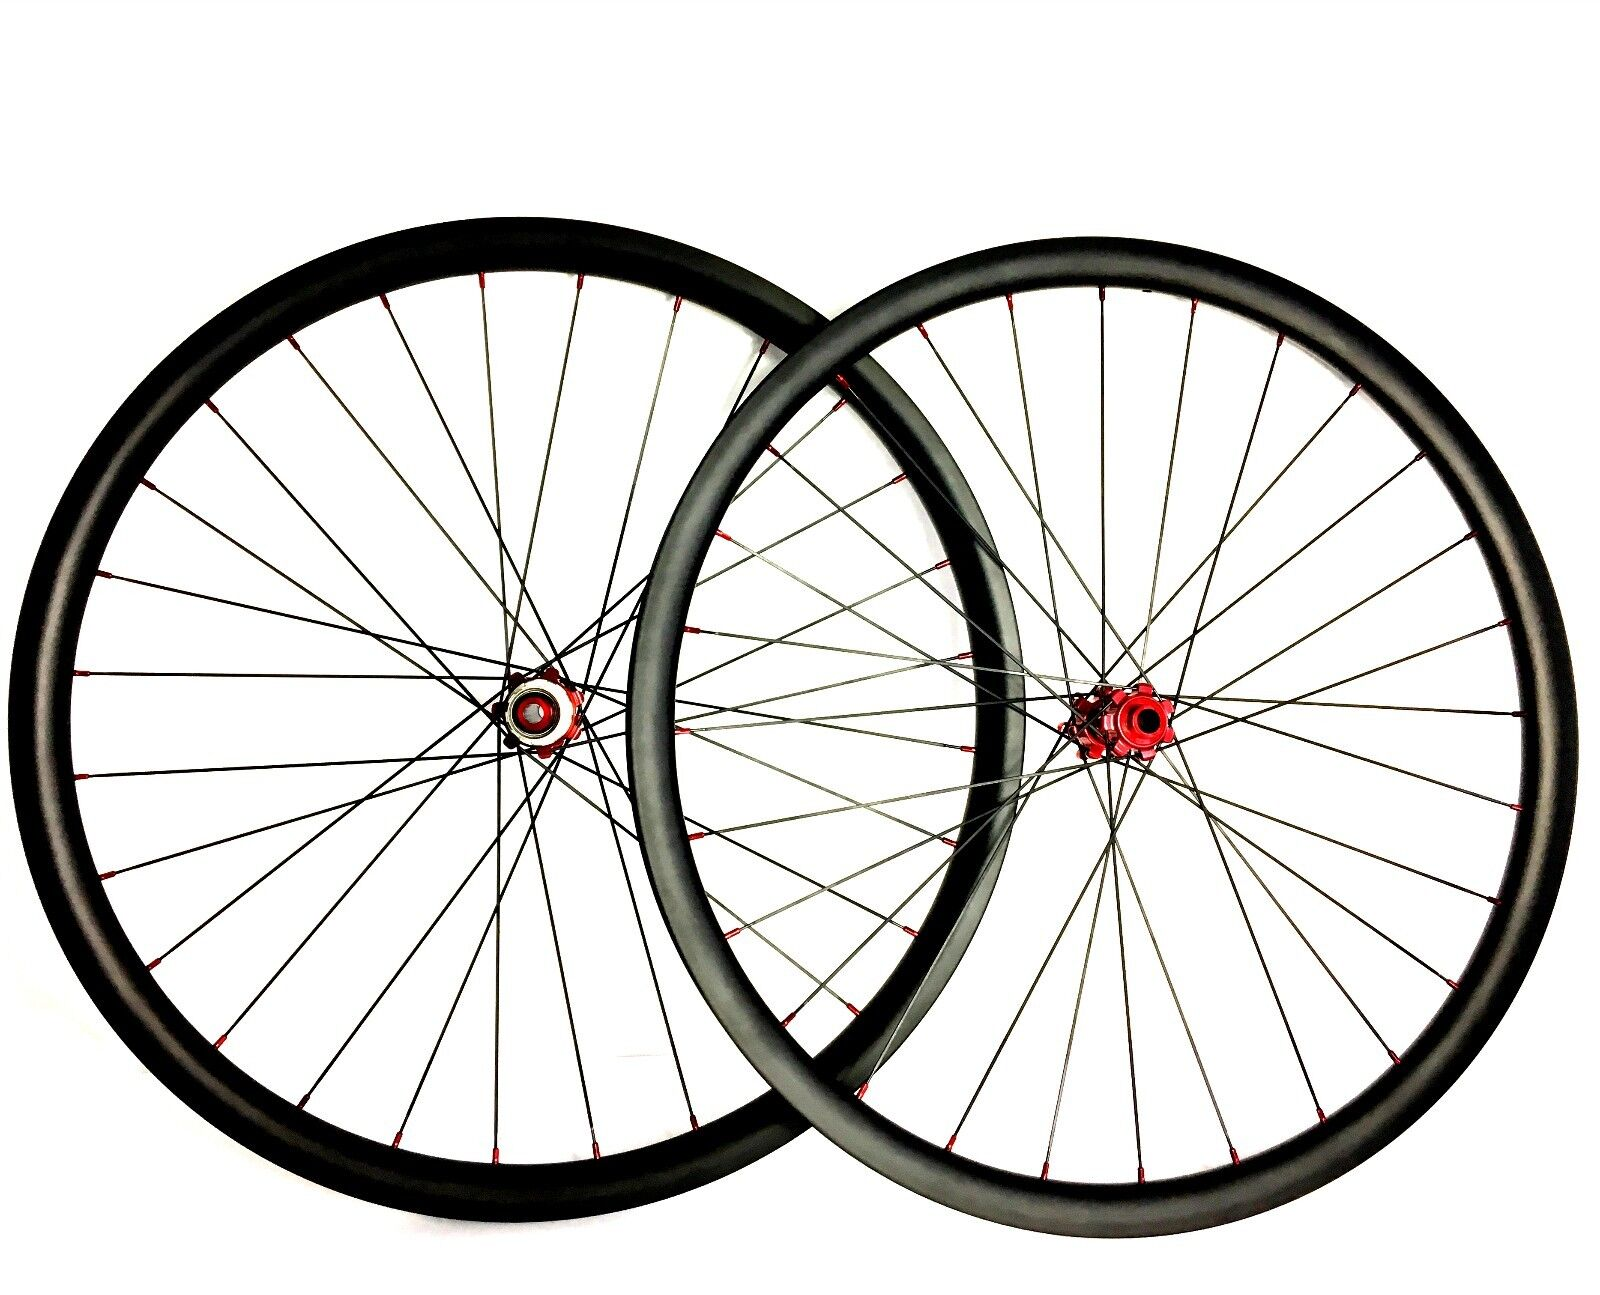 29 inch 33mm asymmetric carbon fiber mountain bike wheels with powerway M32 hub